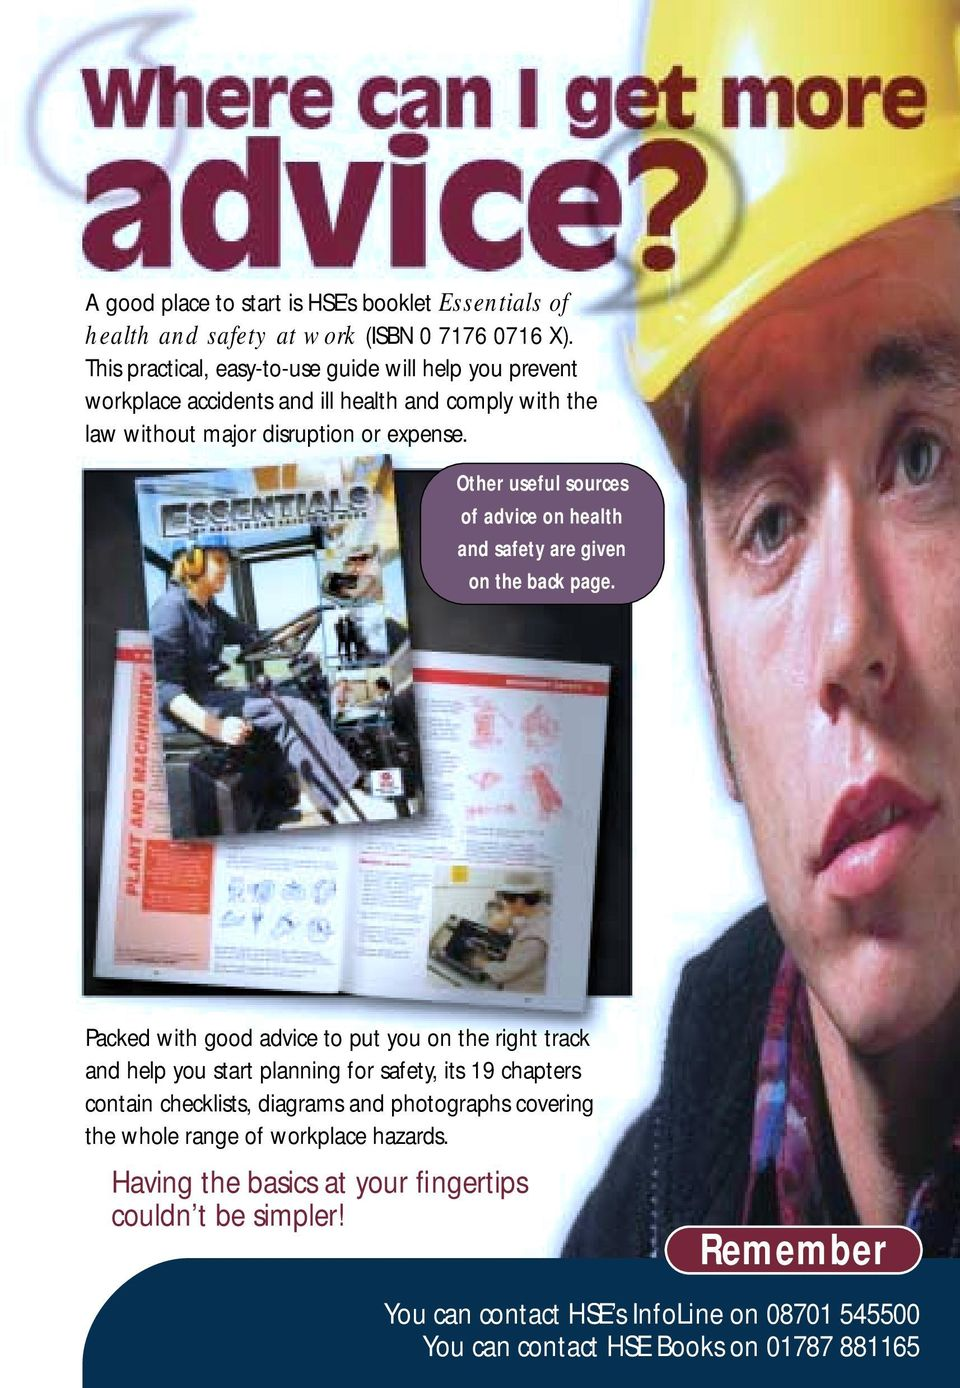 Other useful sources of advice on health and safety are given on the back page.